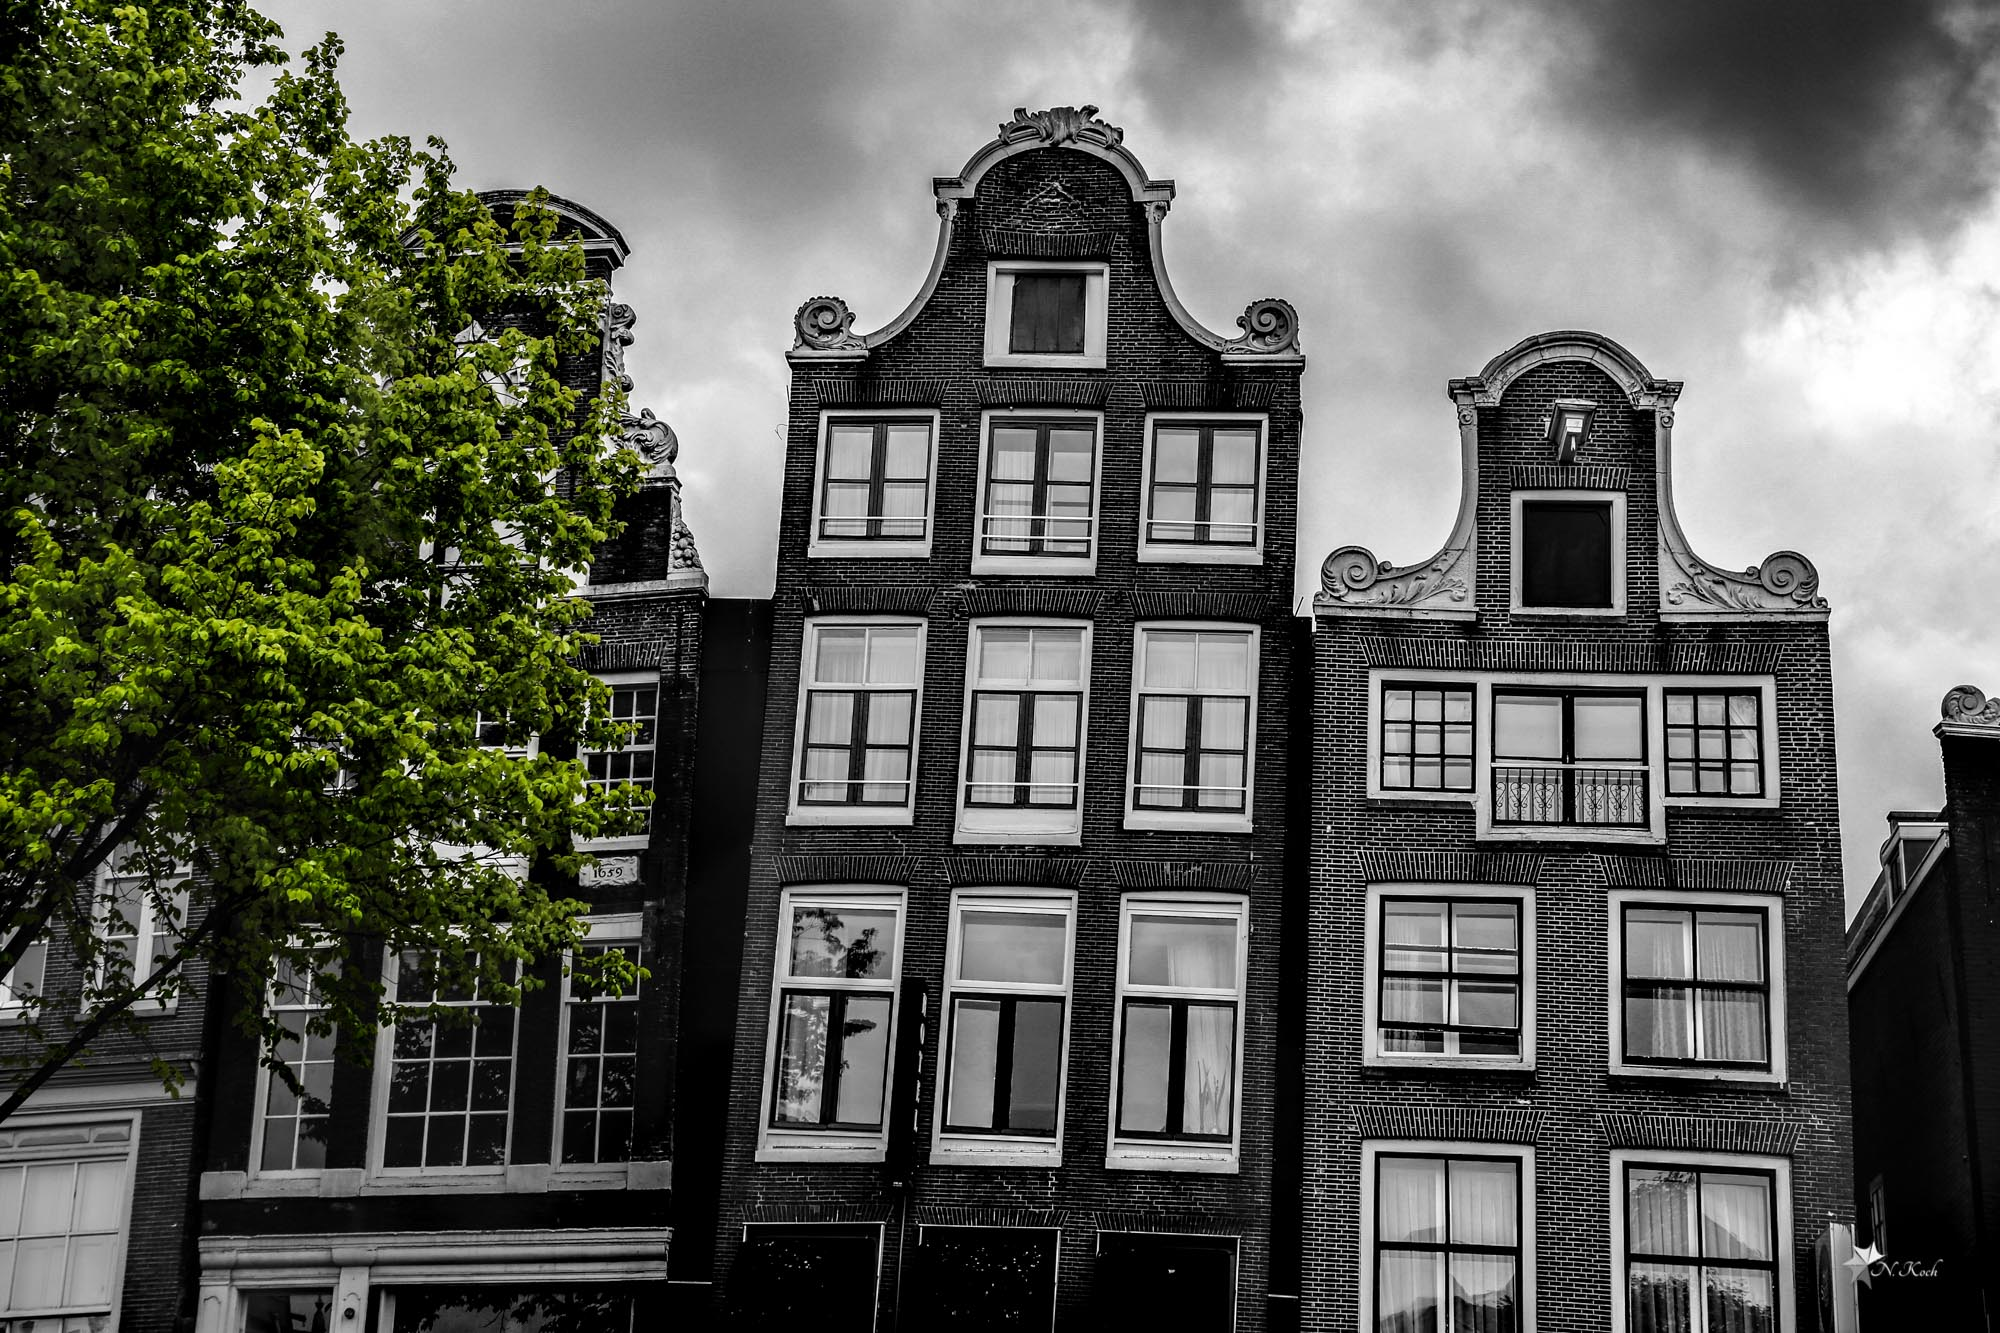 2015, Amsterdam | The city of Amsterdam